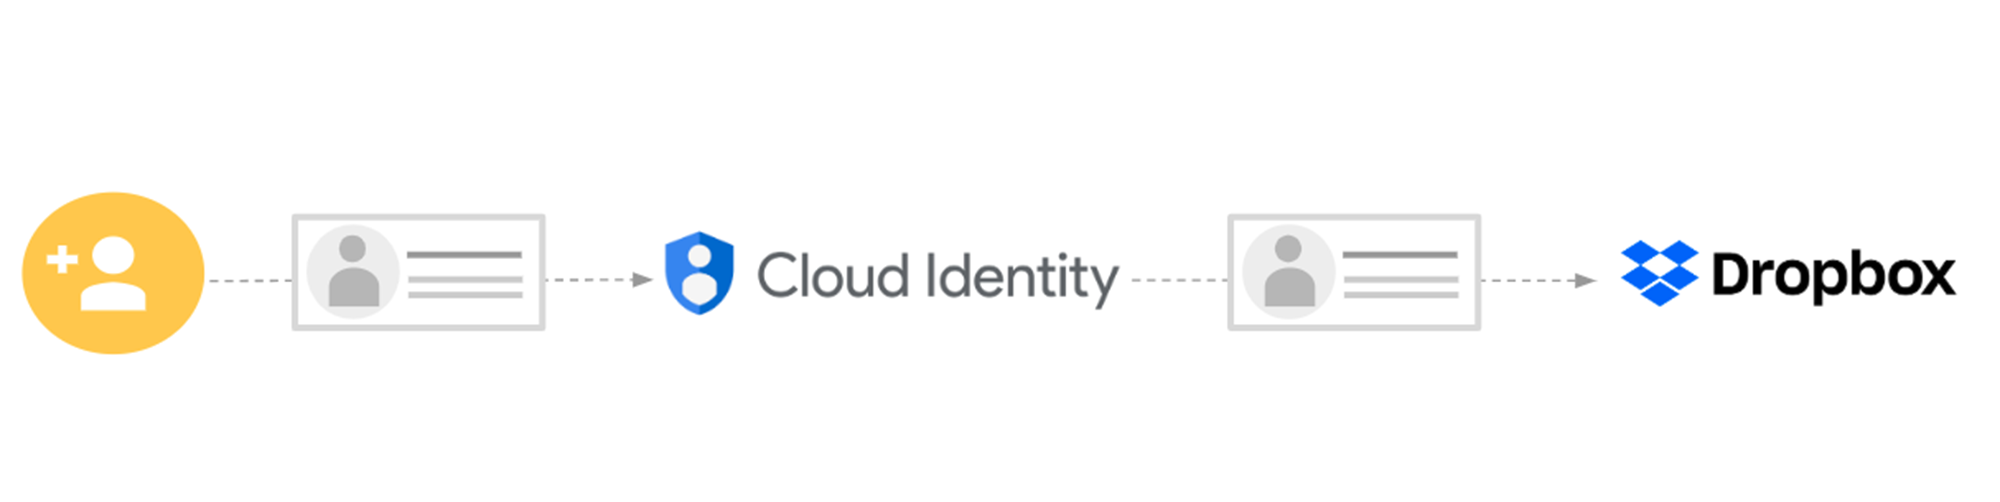 cloud identity.png